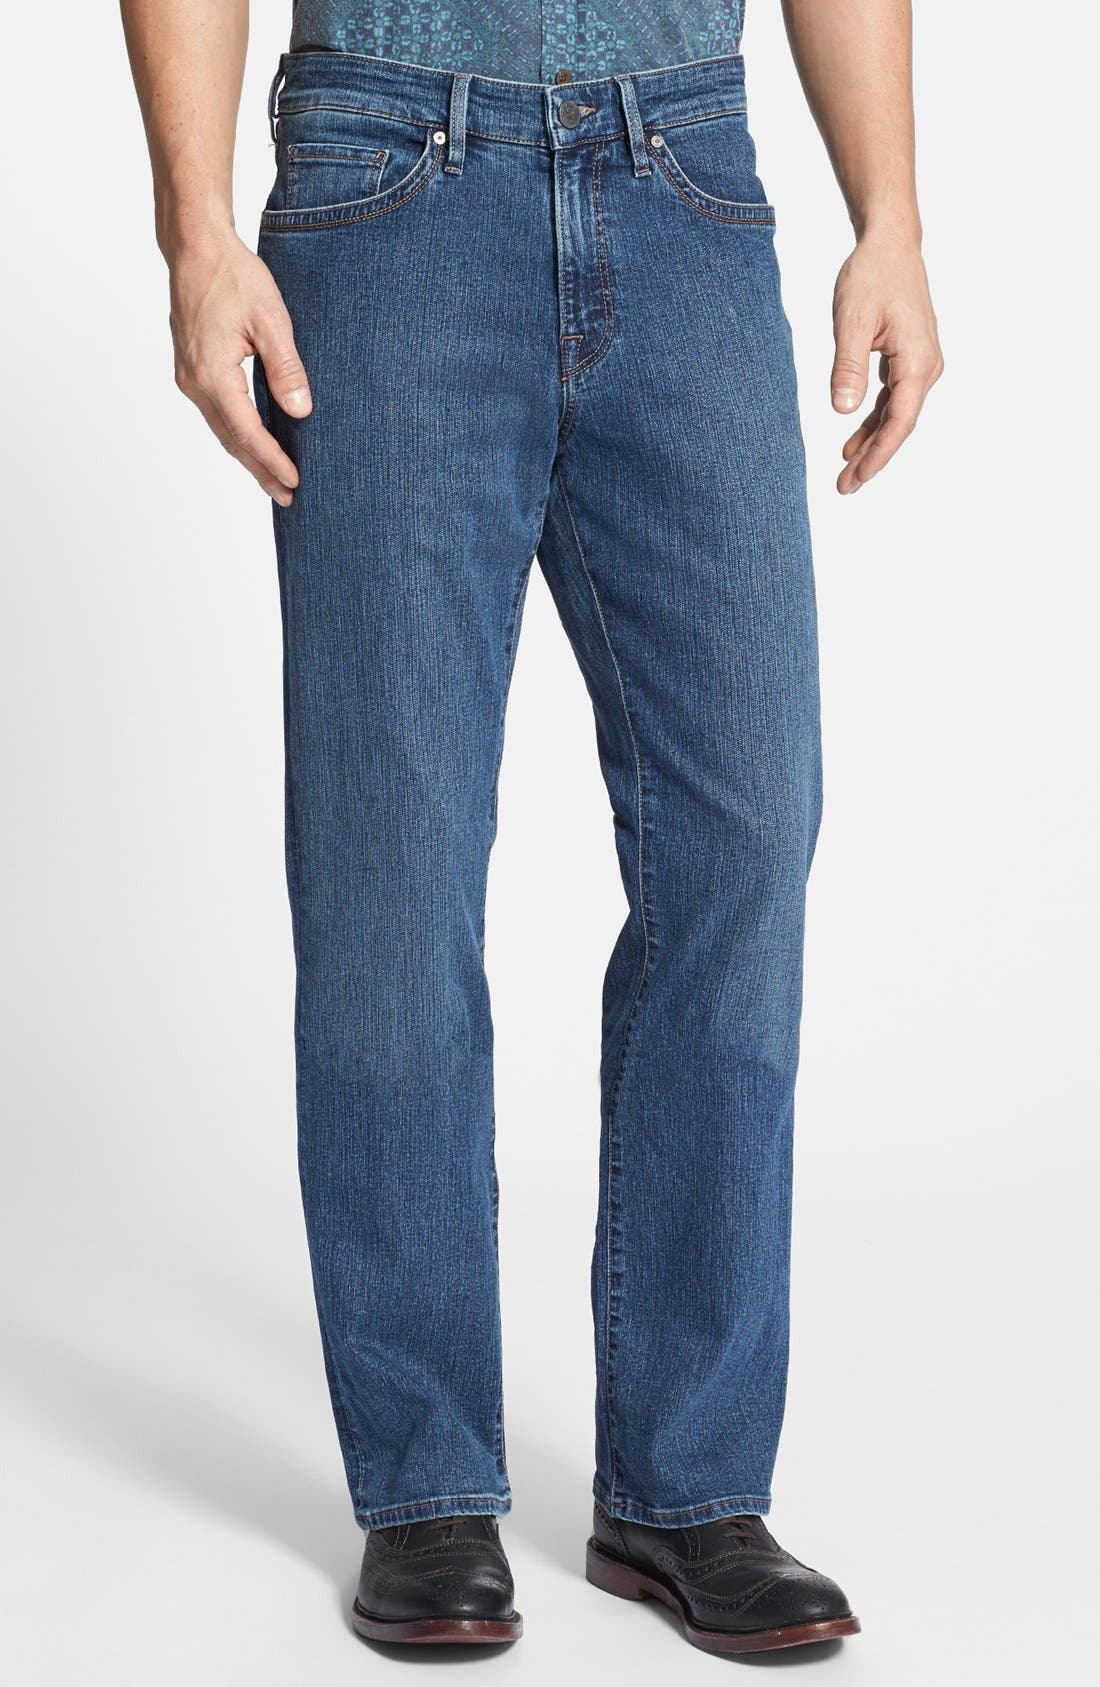 Charisma Classic Relaxed Fit Jeans,                         Main,                         color, Mid Comfort